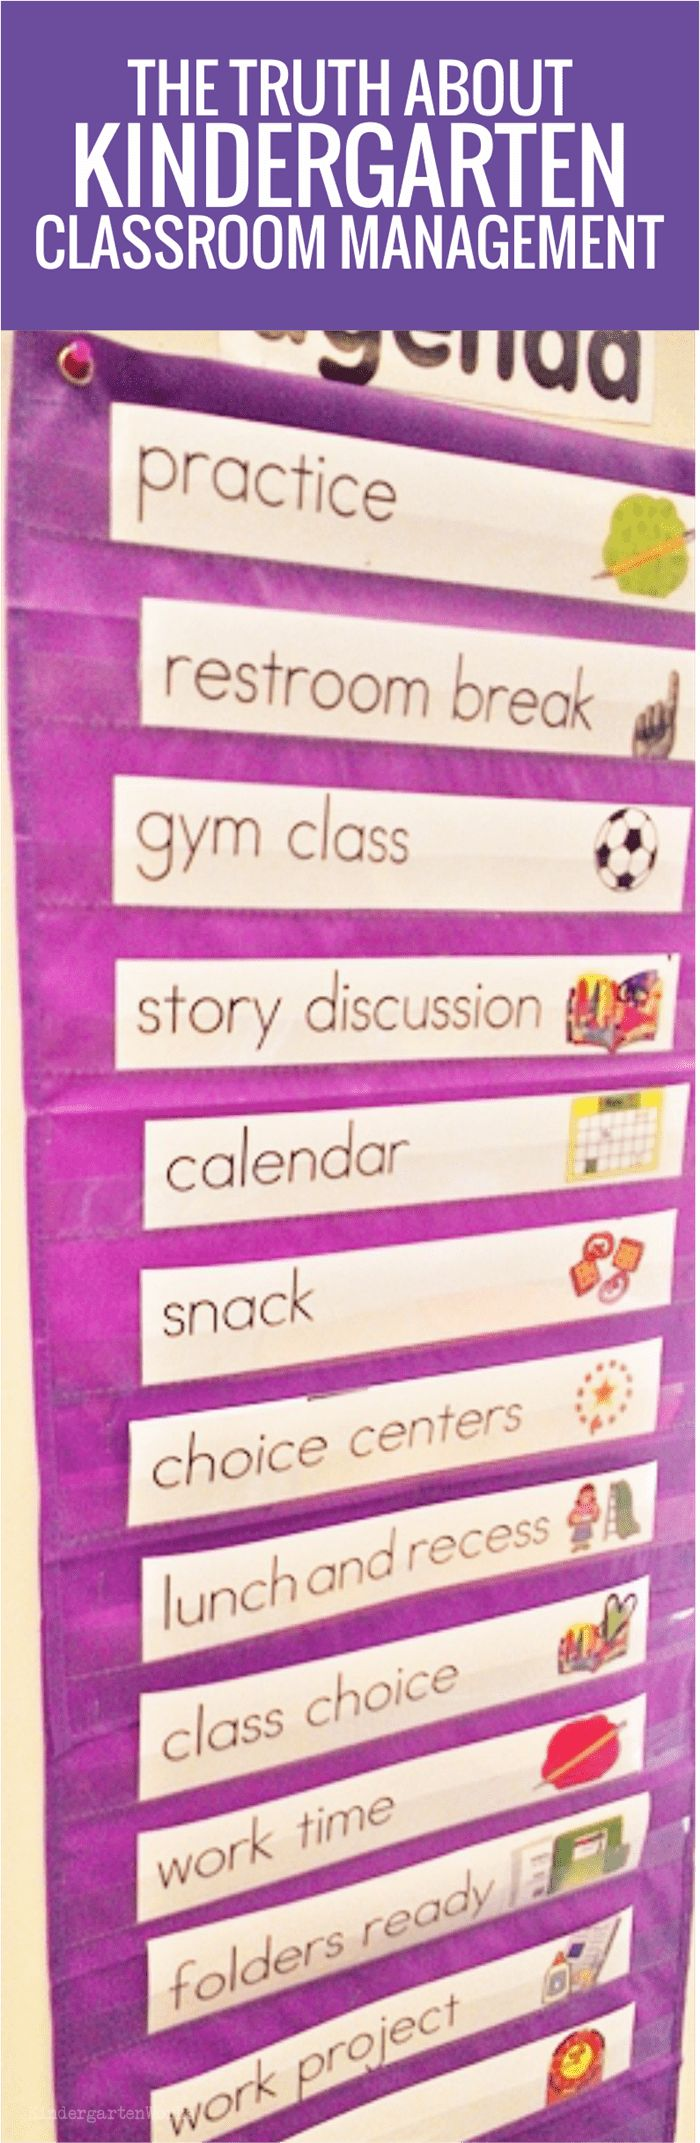 Classroom Management Decor : Best classroom management images on pinterest